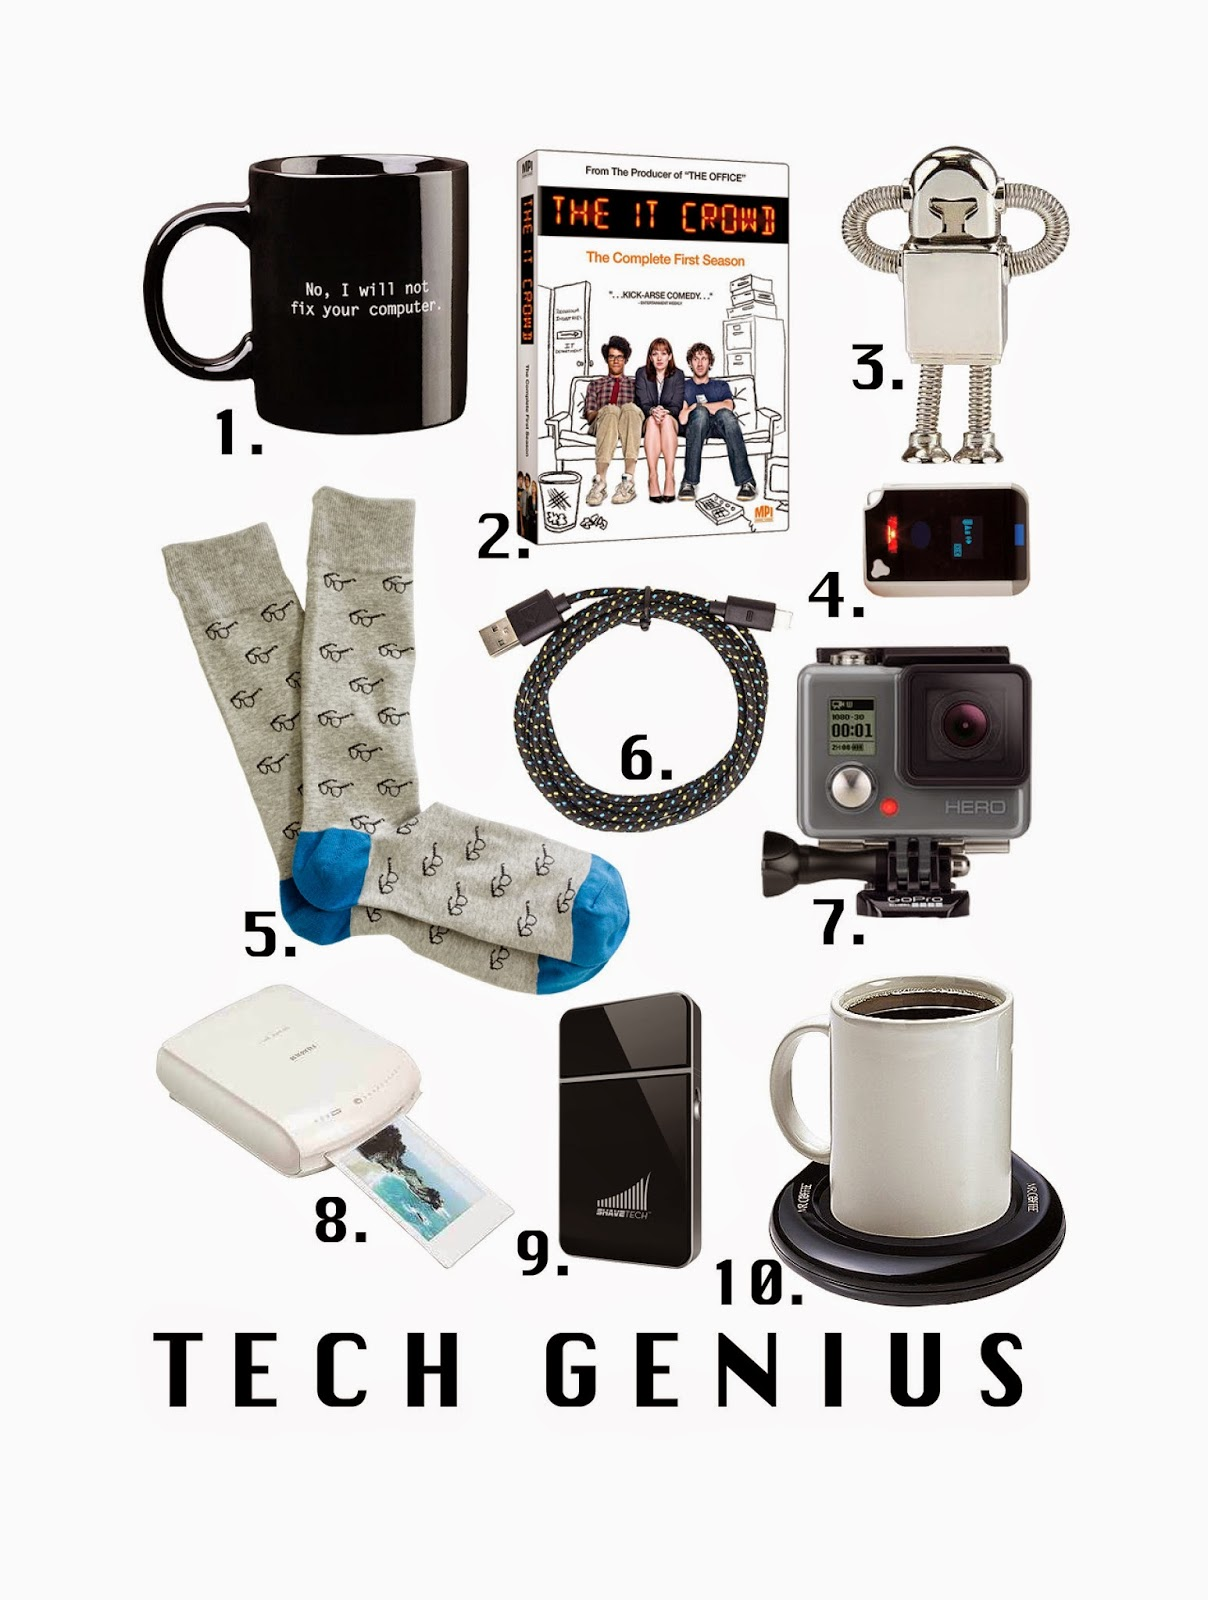 mens-gift-guide, technology-gift-guide, tech-genius-gift-guide, holiday-gift-guide